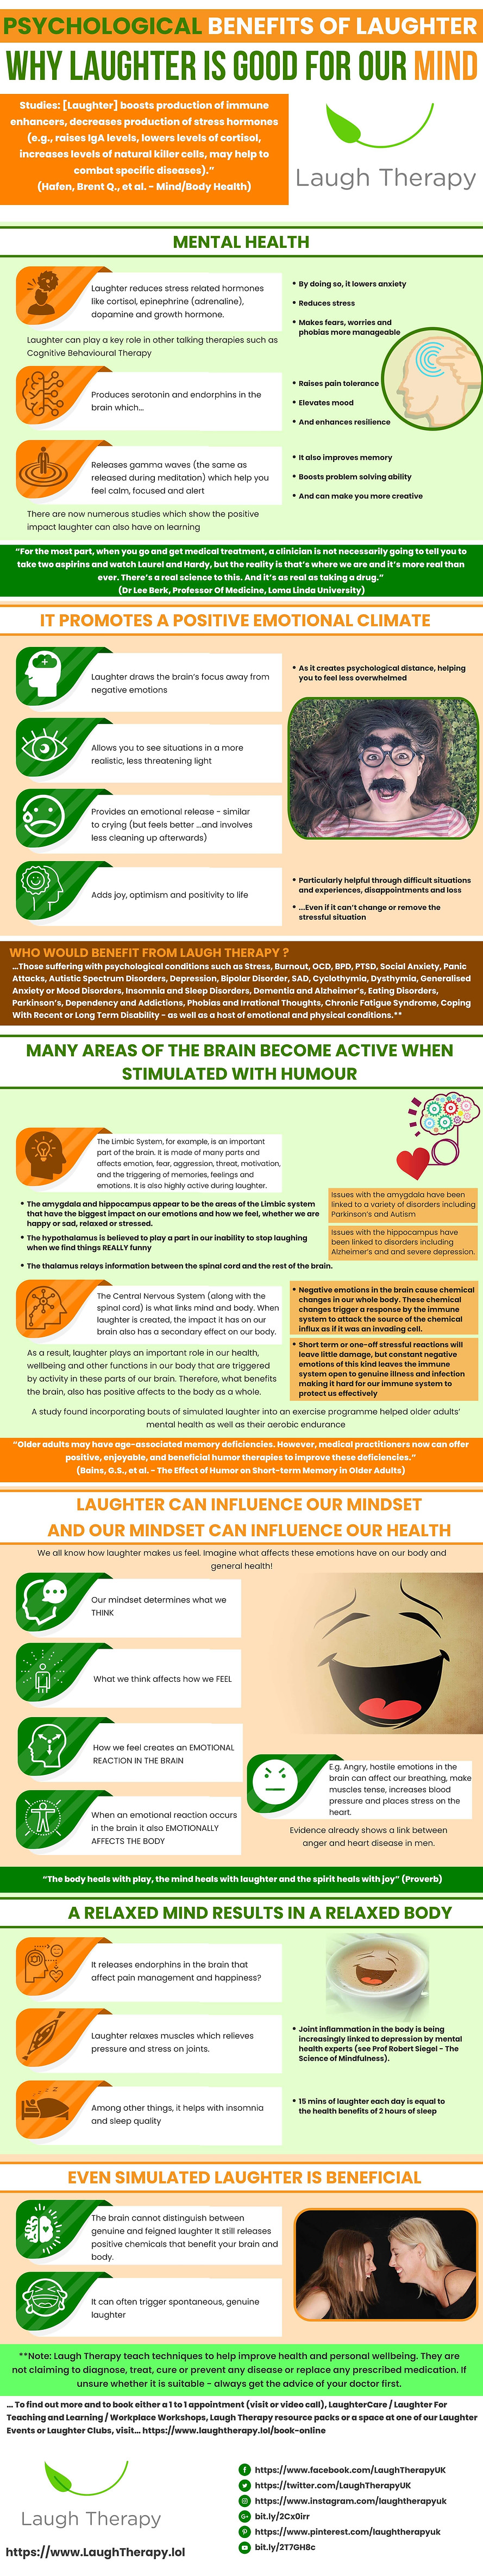 Mental Health Effects of Laughter. Why Is Laughter Good For Our Mind? Who Would Benefit From Laugh Therapy?